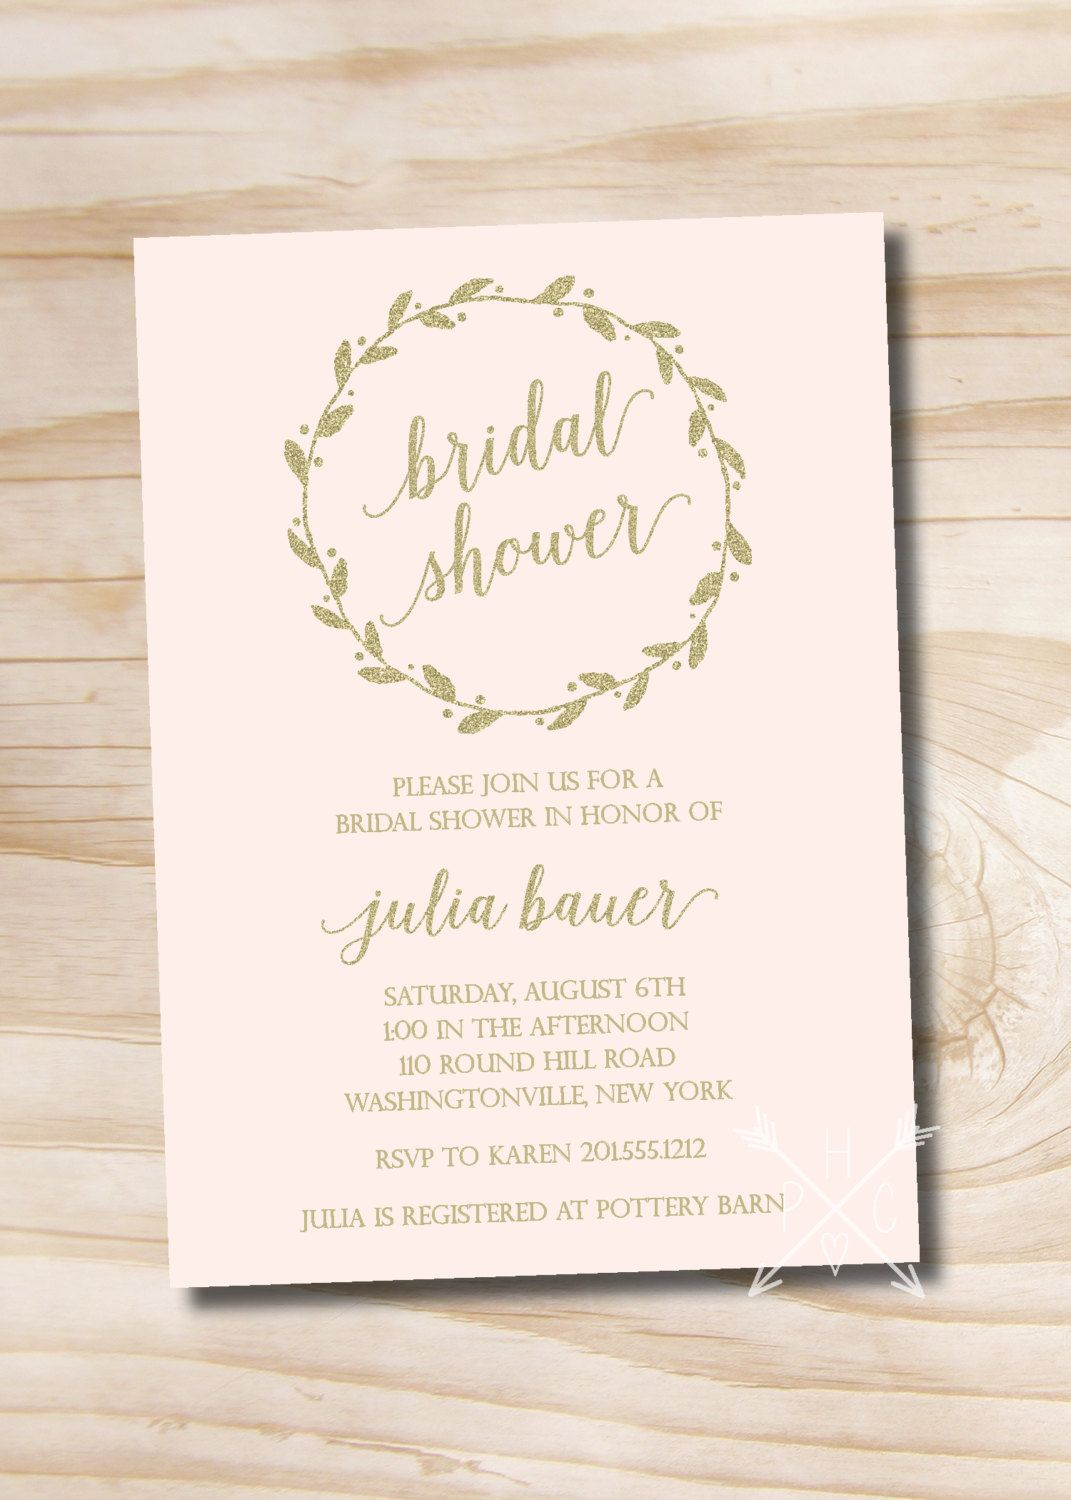 Blush and Gold Glitter Wreath Bridal Shower Invitation - Printable Invitation by PaperHeartCompany on Etsy